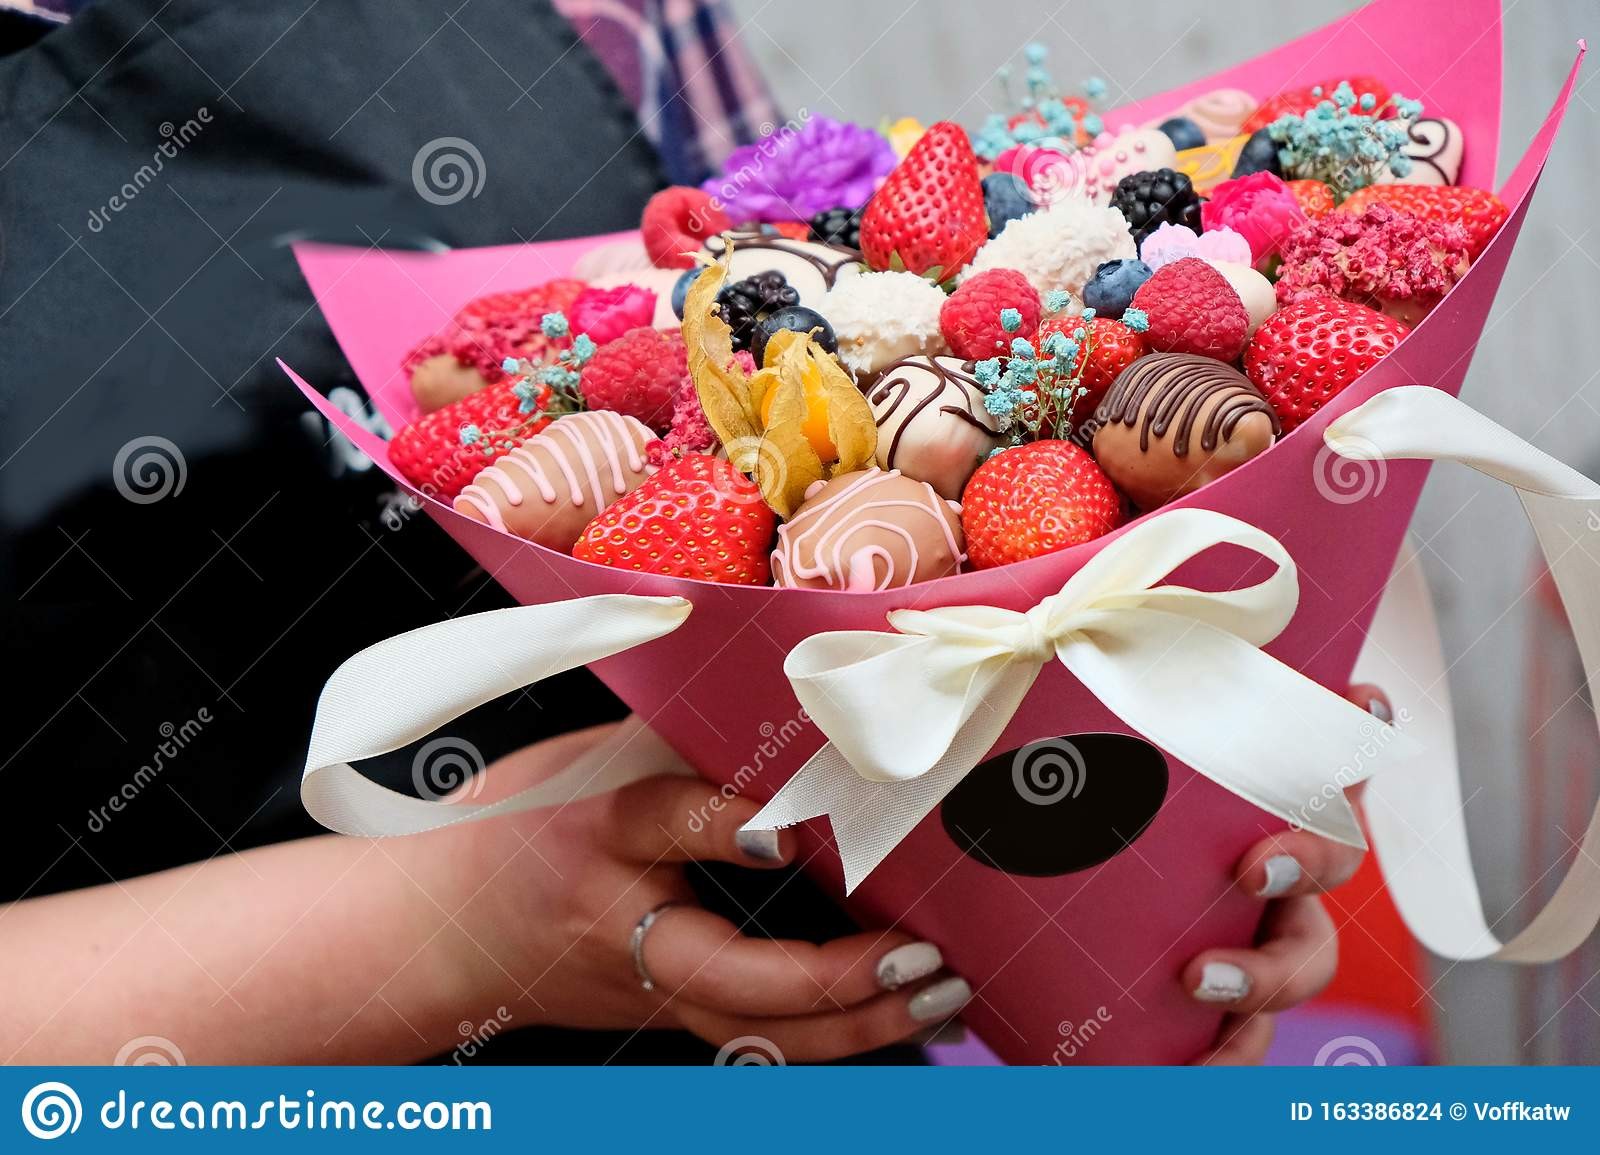 A Bouquet Of Chocolate Covered Strawberries With Different Toppings Stock Photo Image Of Decorated Flavor 163386824